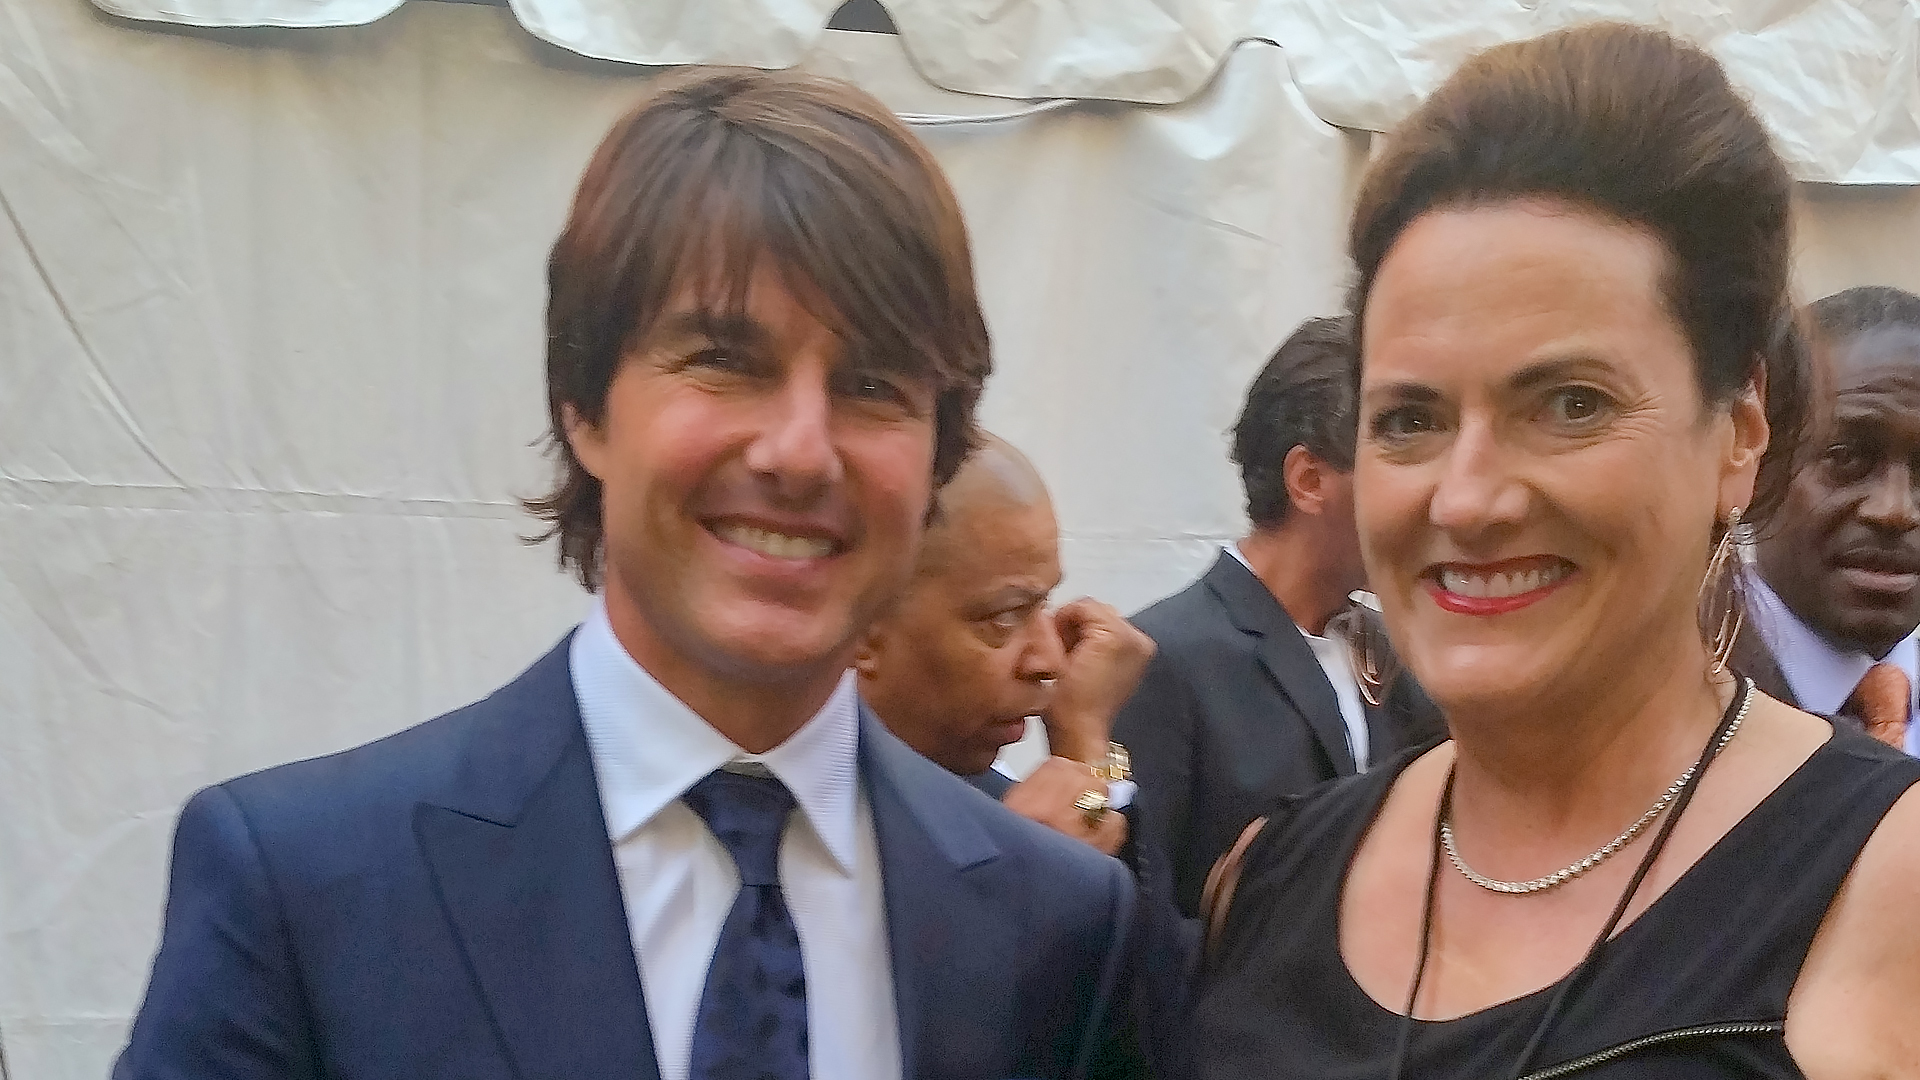 Tom Cruise at Mission Impossible Film Premiere